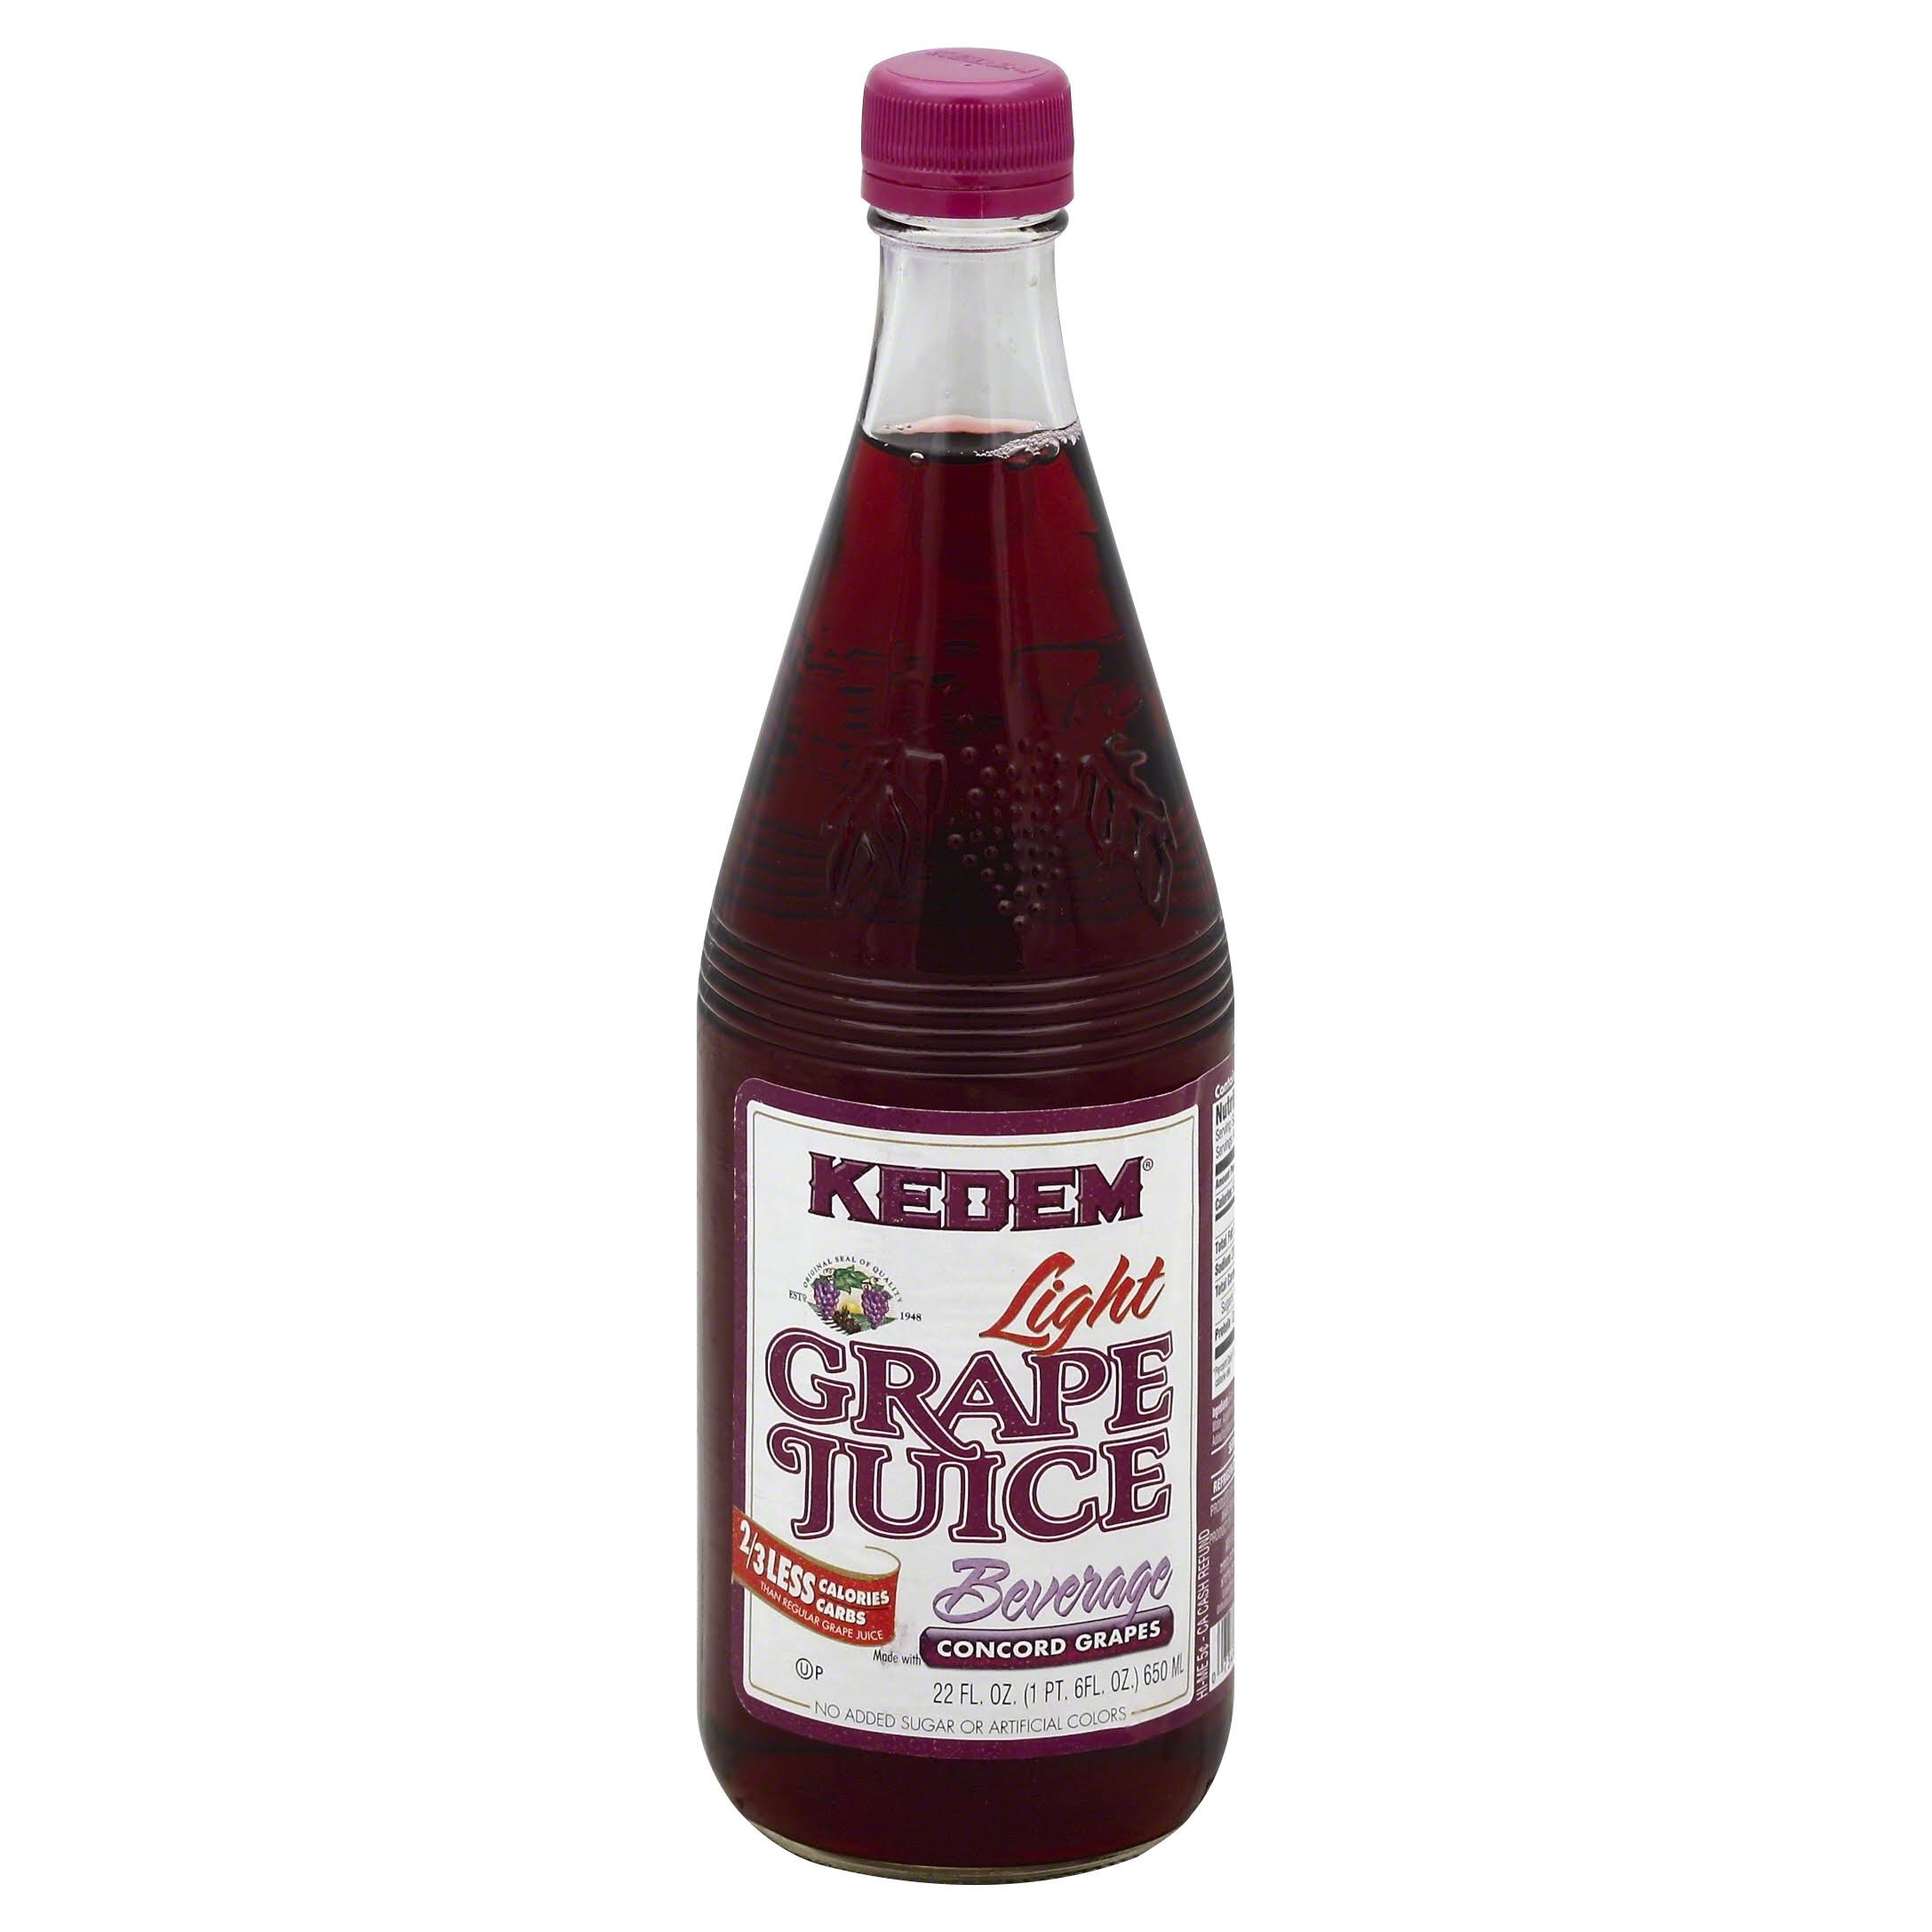 Kedem Grape Juice Beverage, Light - 22 fl oz